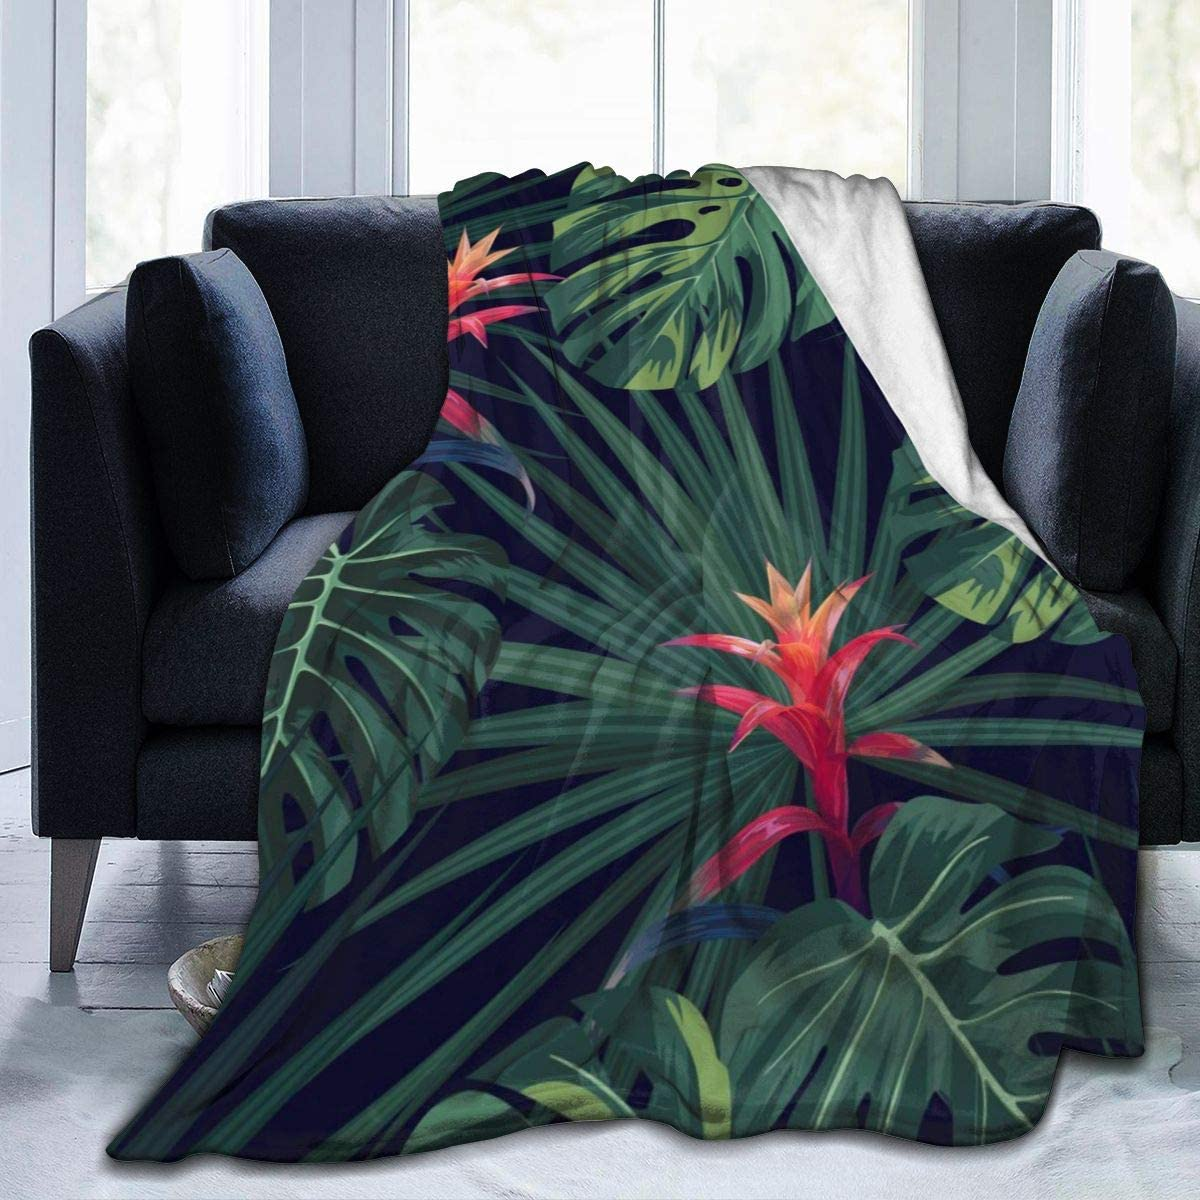 Micro Fleece Plush Soft Baby Blanket Tropical Monstera Leaves Fluffy Warm Toddler Bed/Crib Blanket Lightweight Flannel Daycare Nap Kids Sleeping Tummy Time Throw Blanket Girls Boy Clearance Kid/Baby